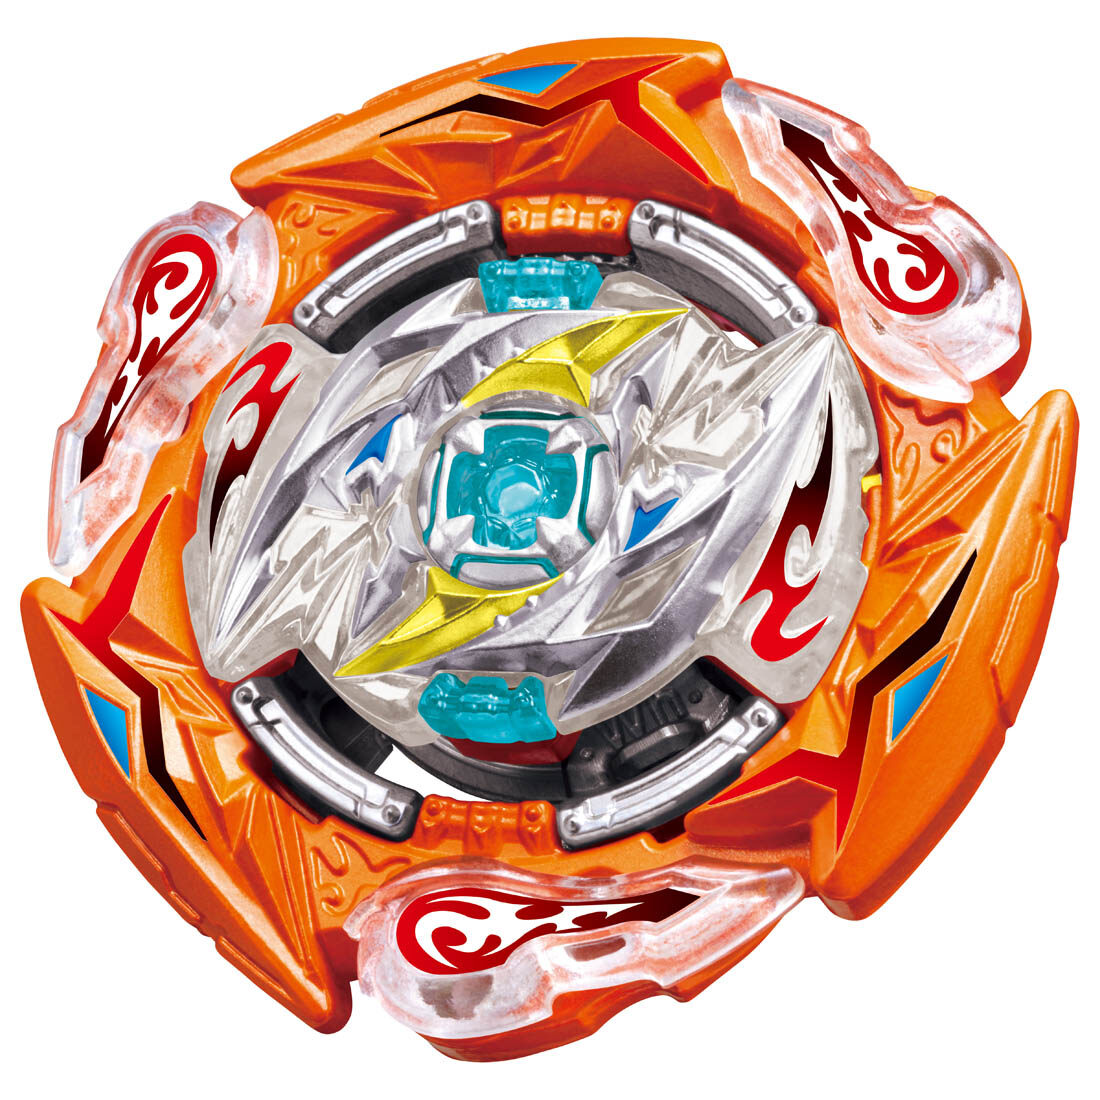 Superking Beyblade New Model B-159 B-160 B-161 B-162 B-163